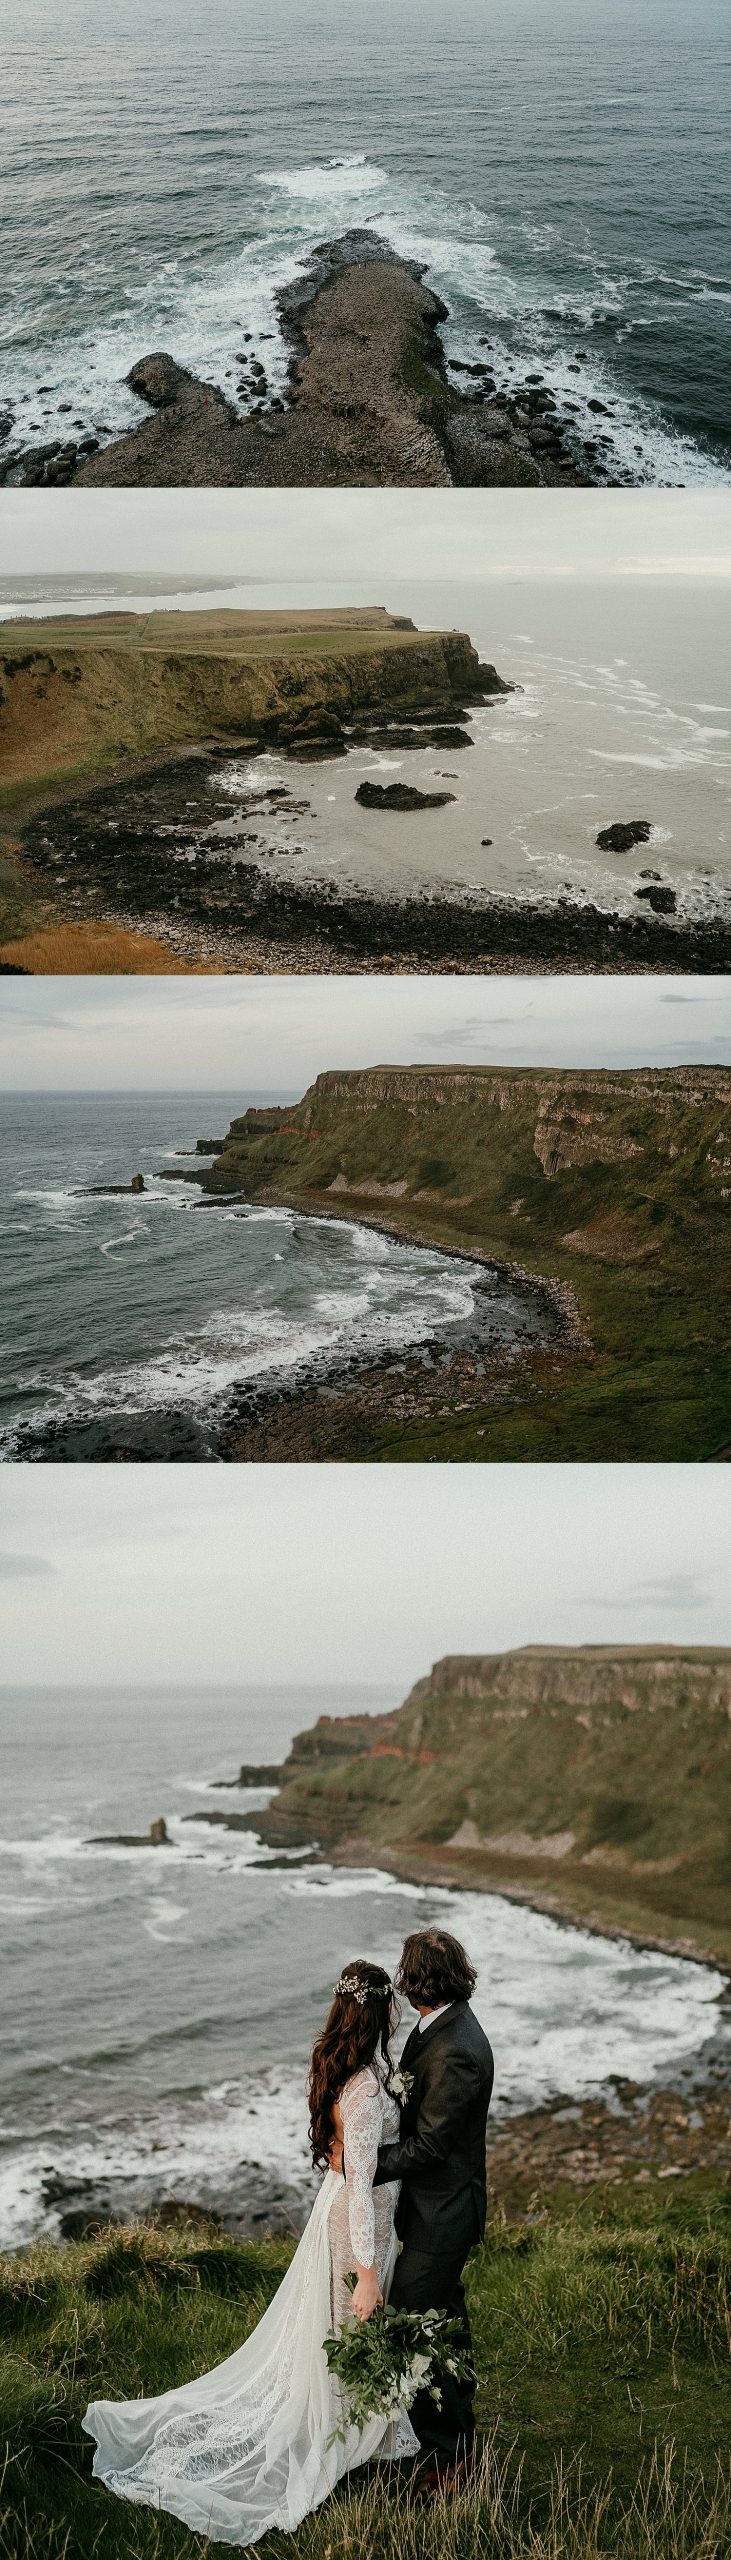 The Giants Causeway is a great place to elope in Ireland. The Best places to elope in Northern ireland. Irish elopements in the Mourne Mountains.